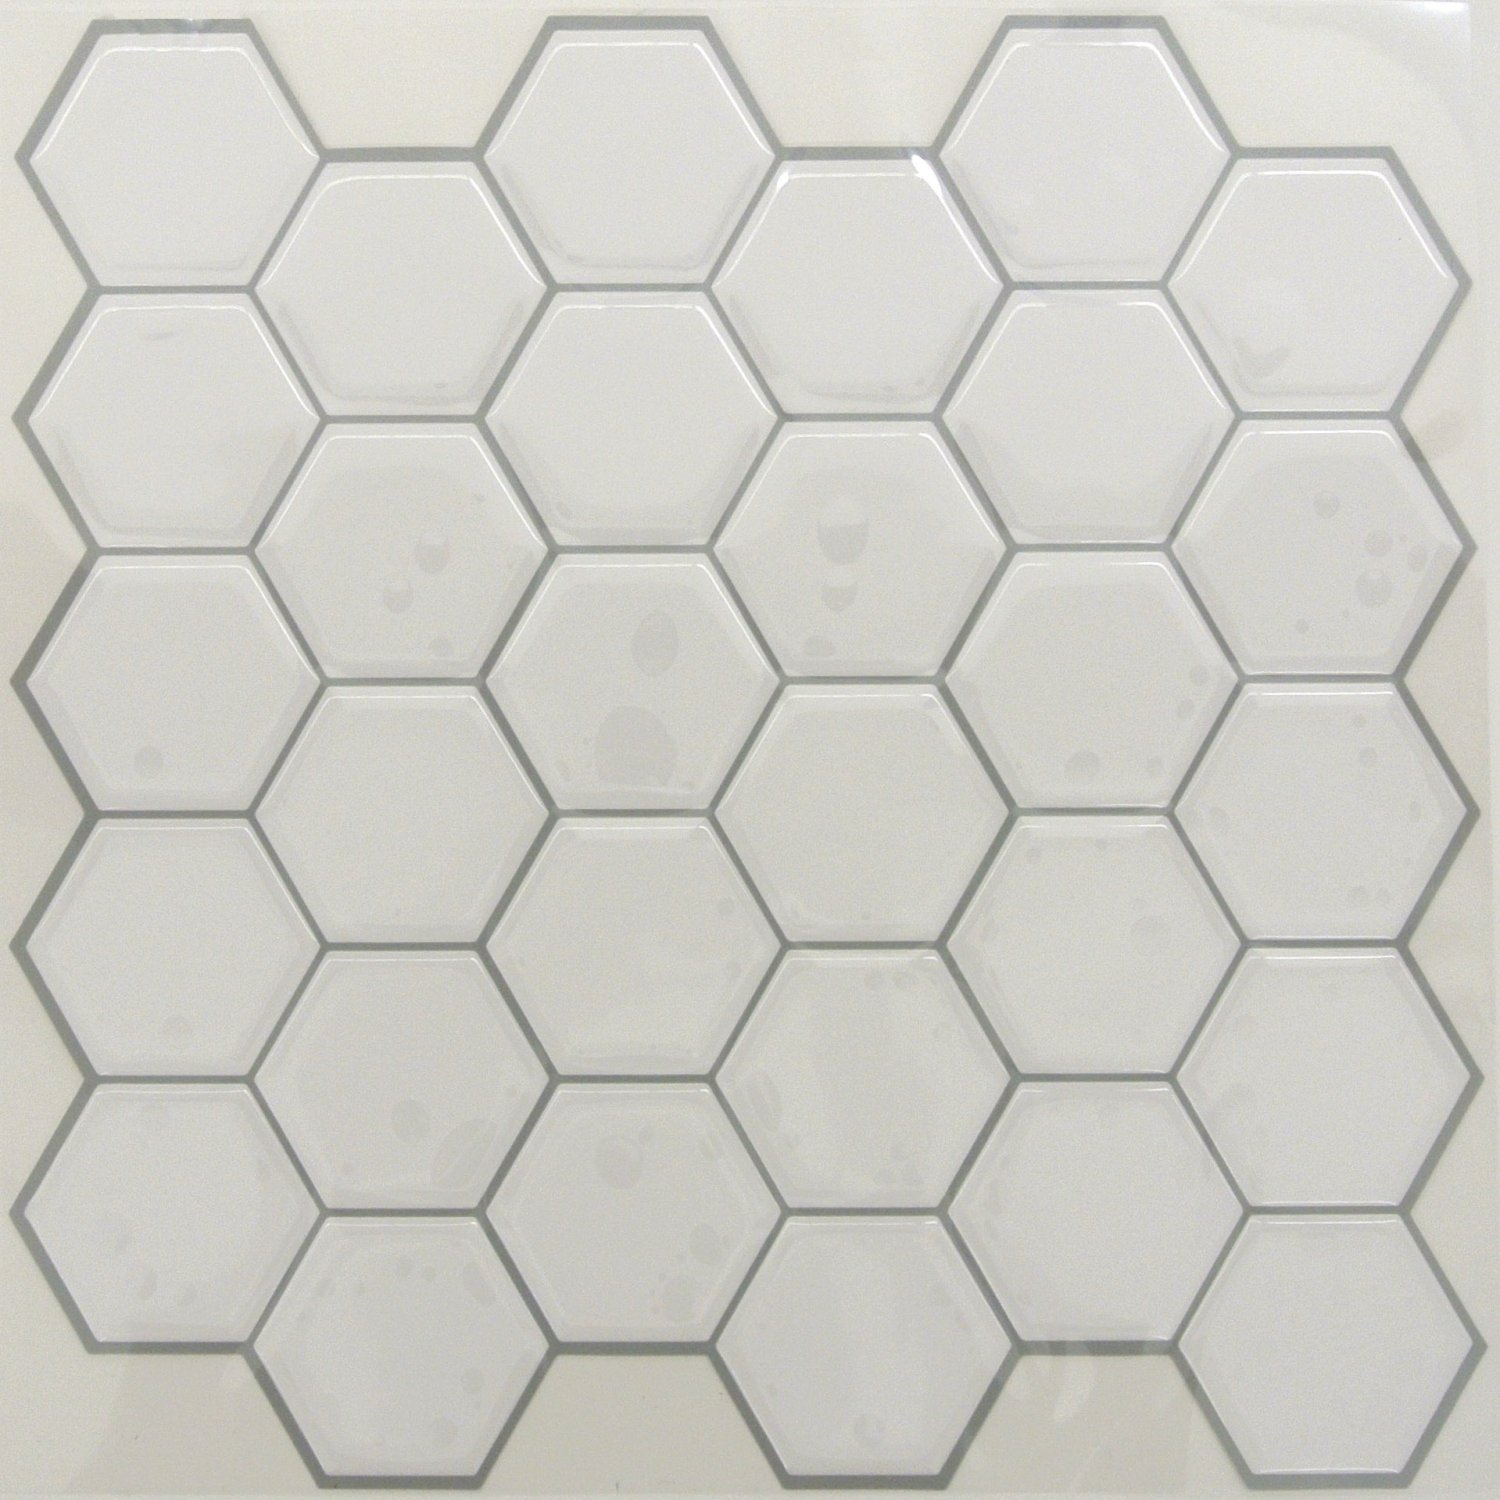 RoomMates StickTILES Pearl Hexagon Peel and Stick Backsplash Tiles - 4 Per Pack